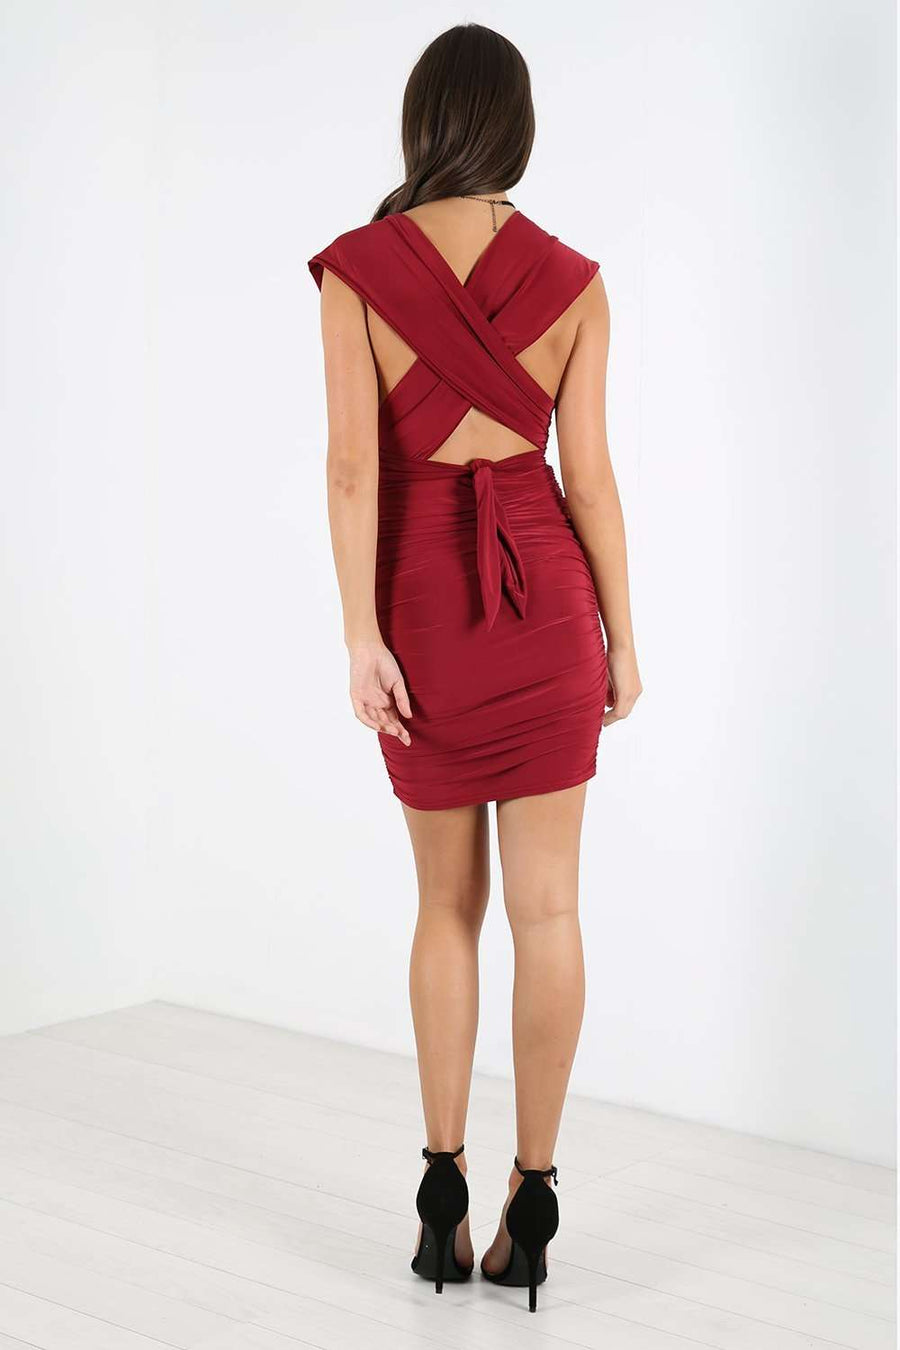 Shyann Multiway Ruched Bodycon Dress - bejealous-com